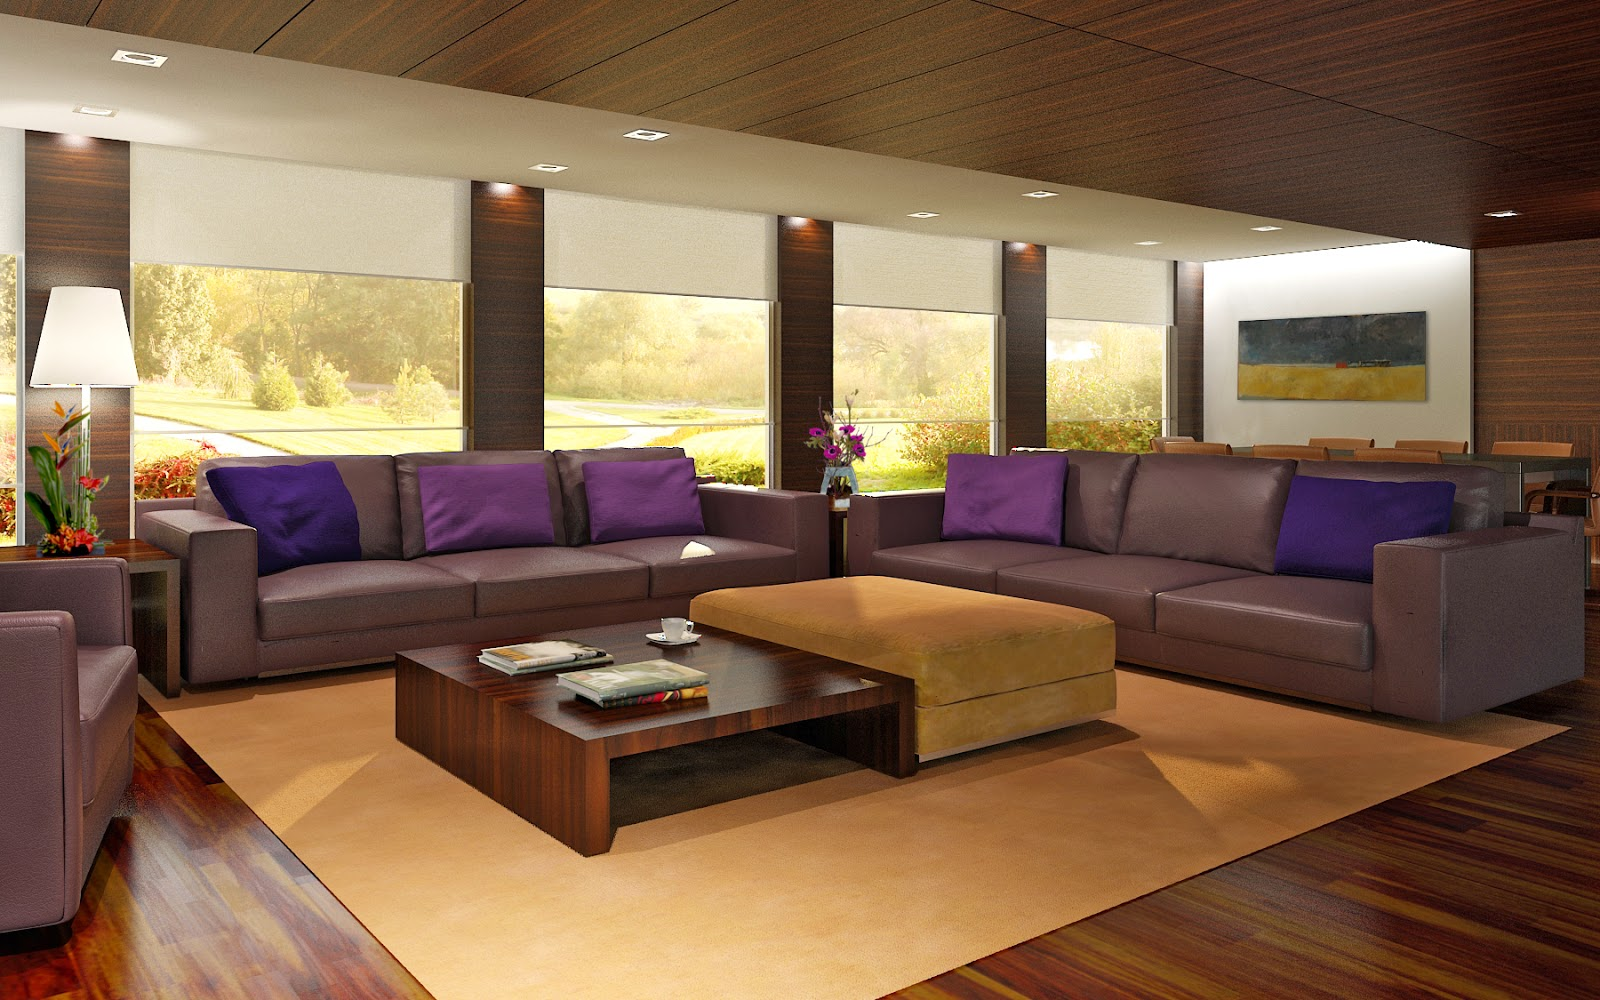 Sofa Designs For Living Room Latest Furniture Designs For Living